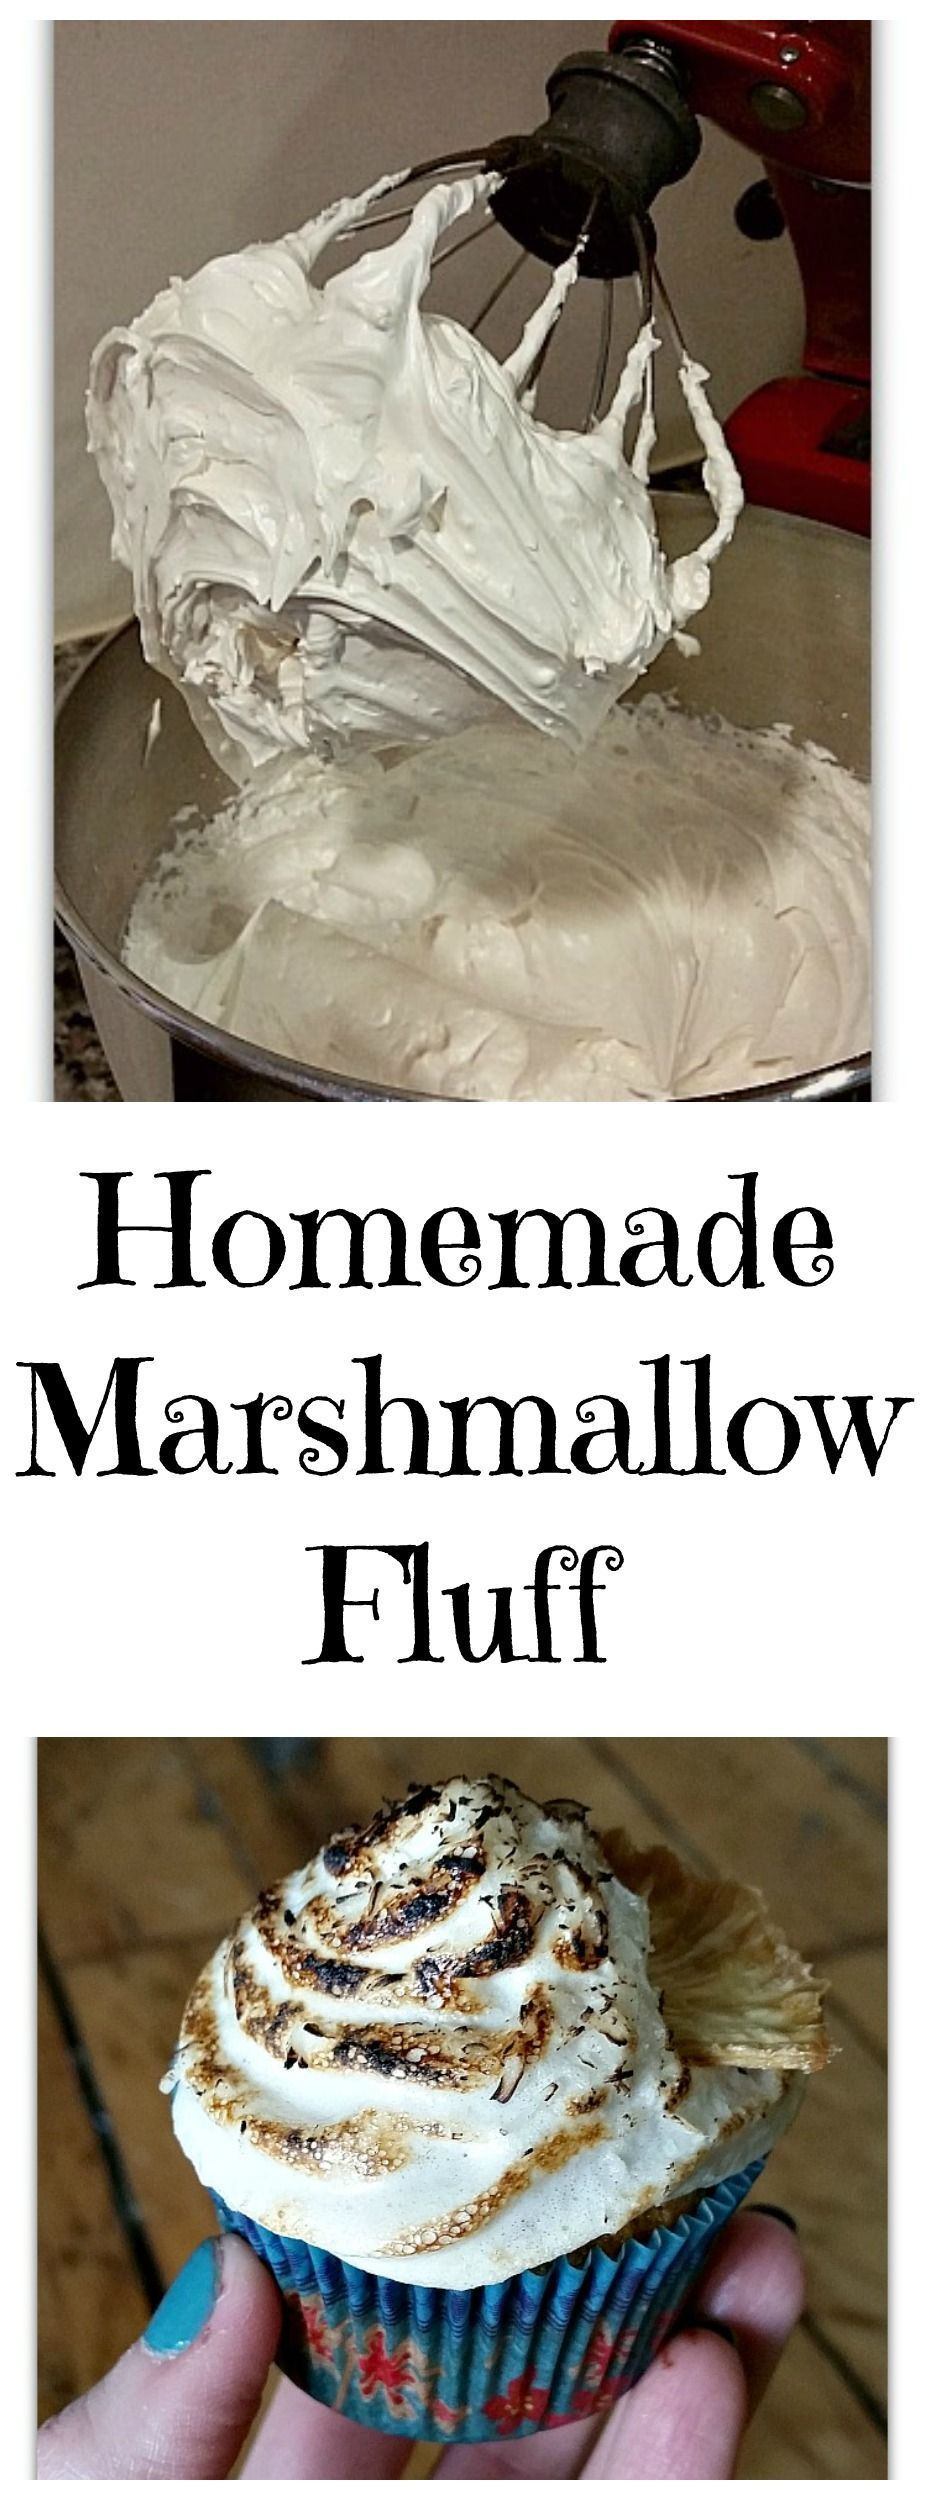 Homemade Marshmallow Fluff - Made Vegan #marshmallowflufffrosting Vegan Marshmallow Fluff - This 4-ingredient recipe can be used for frosting, whoopie pie filling, meringue, or you can eat it straight from the bowl!  It's vegan, sugar-free, and gluten-free. #marshmallowfluffrecipes Homemade Marshmallow Fluff - Made Vegan #marshmallowflufffrosting Vegan Marshmallow Fluff - This 4-ingredient recipe can be used for frosting, whoopie pie filling, meringue, or you can eat it straight from the bowl! #homemademarshmallowfluff